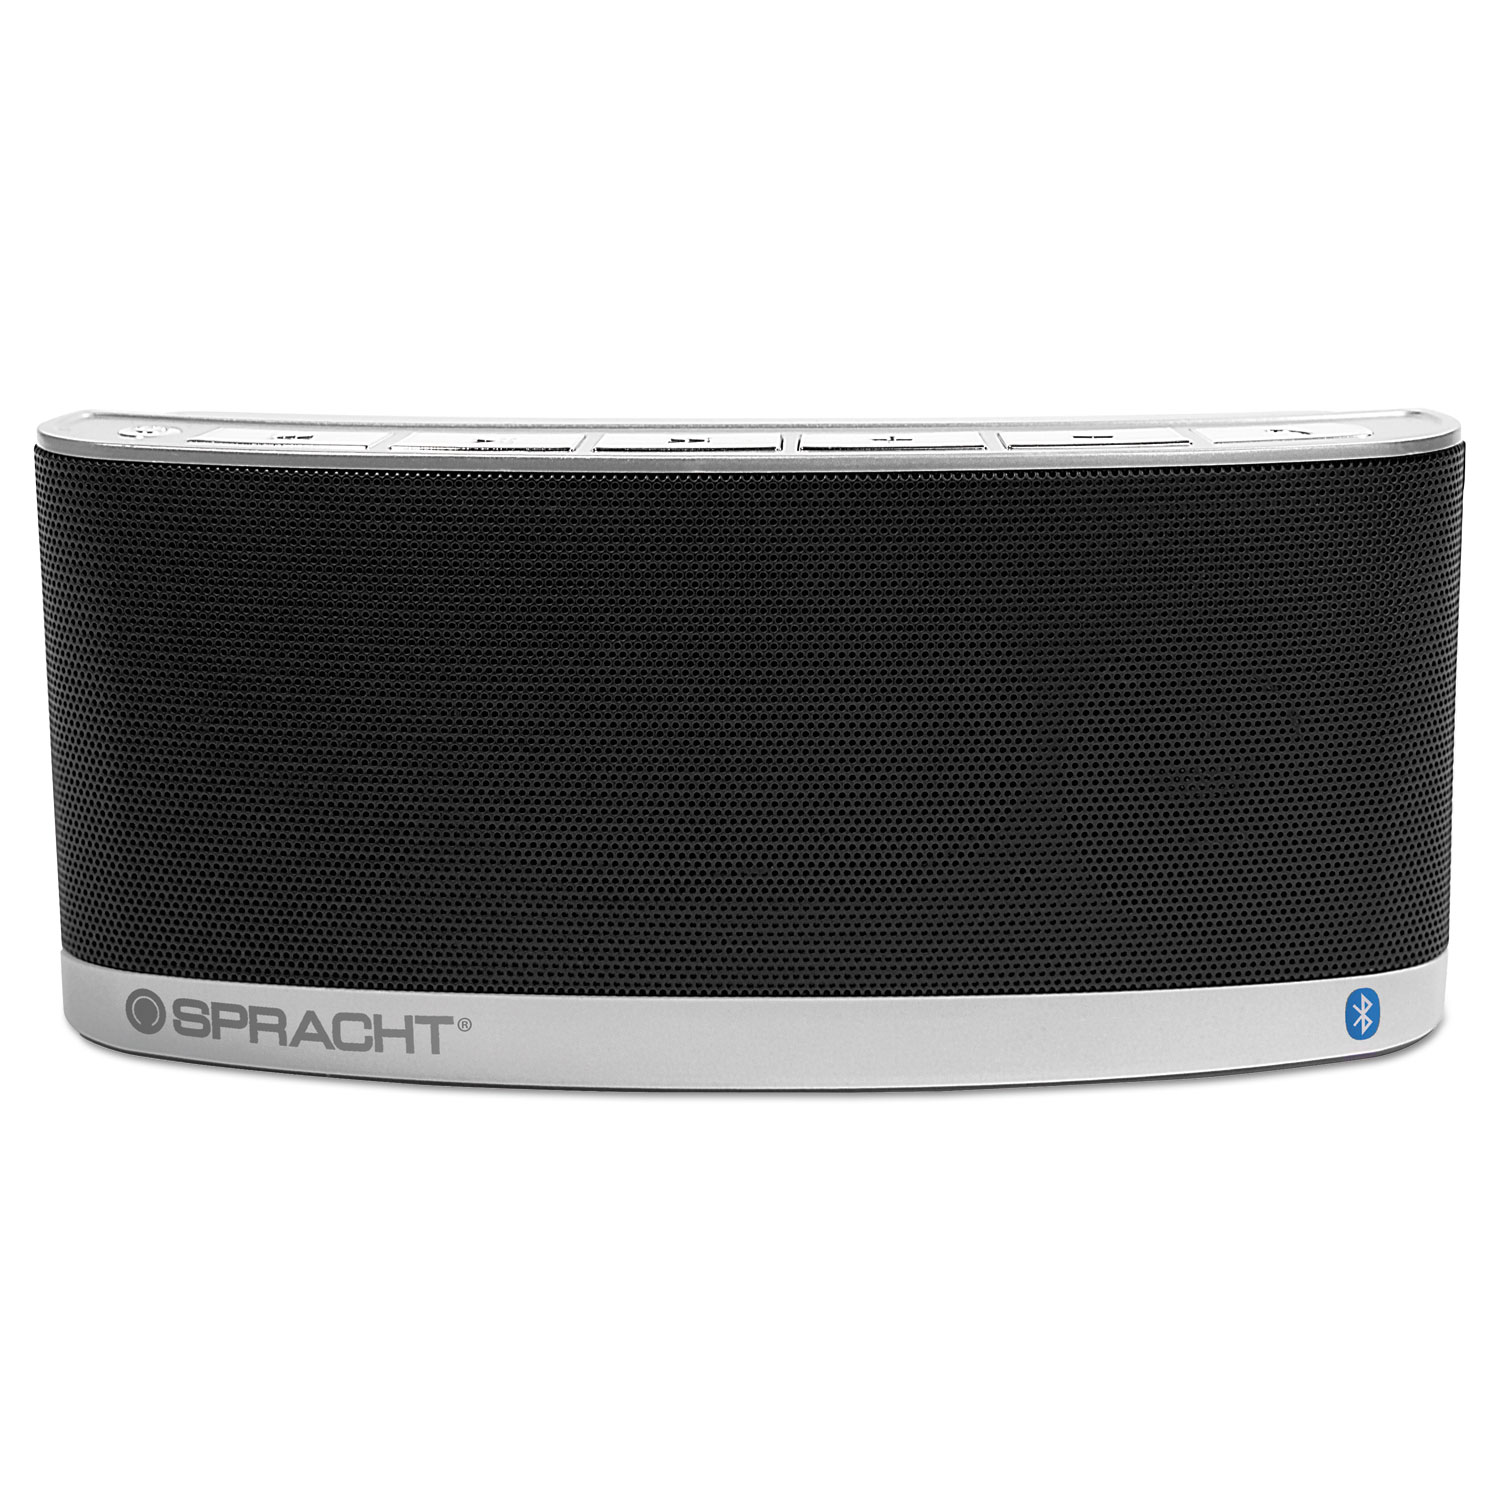 Blunote 2 Portable Wireless Bluetooth Speaker, Silver